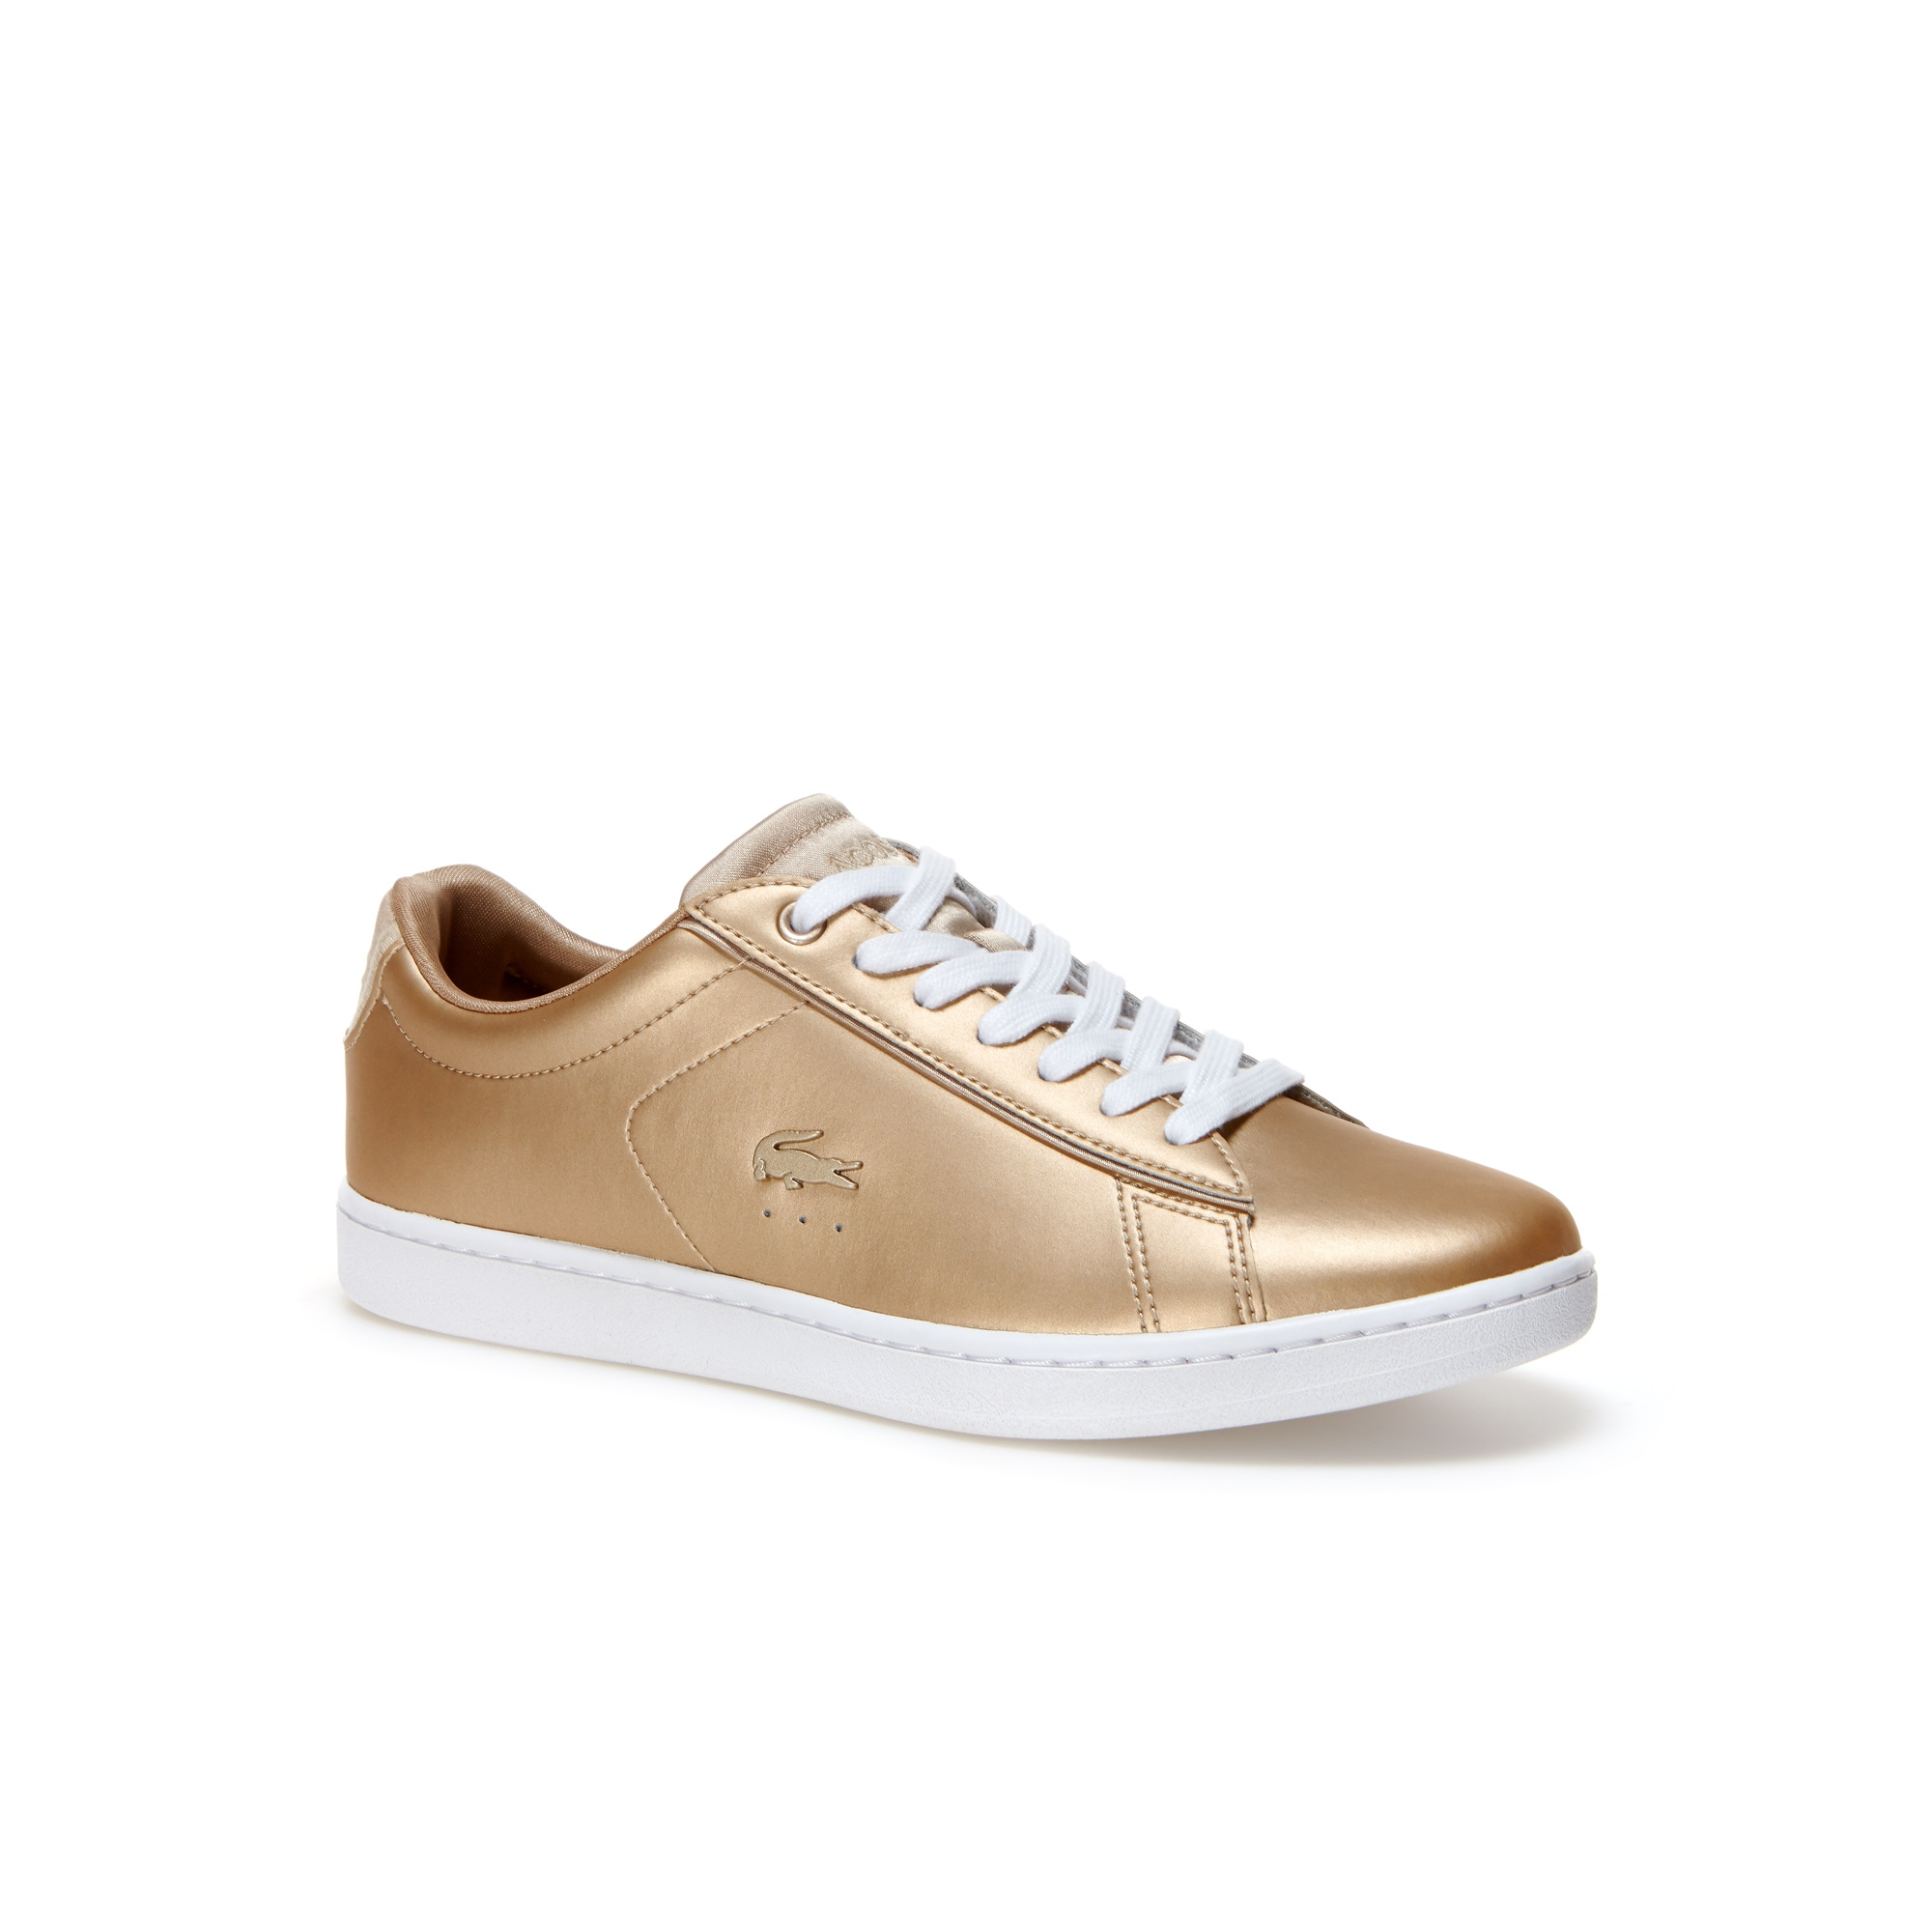 Damen-Sneakers CARNABY EVO aus Leder in Metallic-Optik